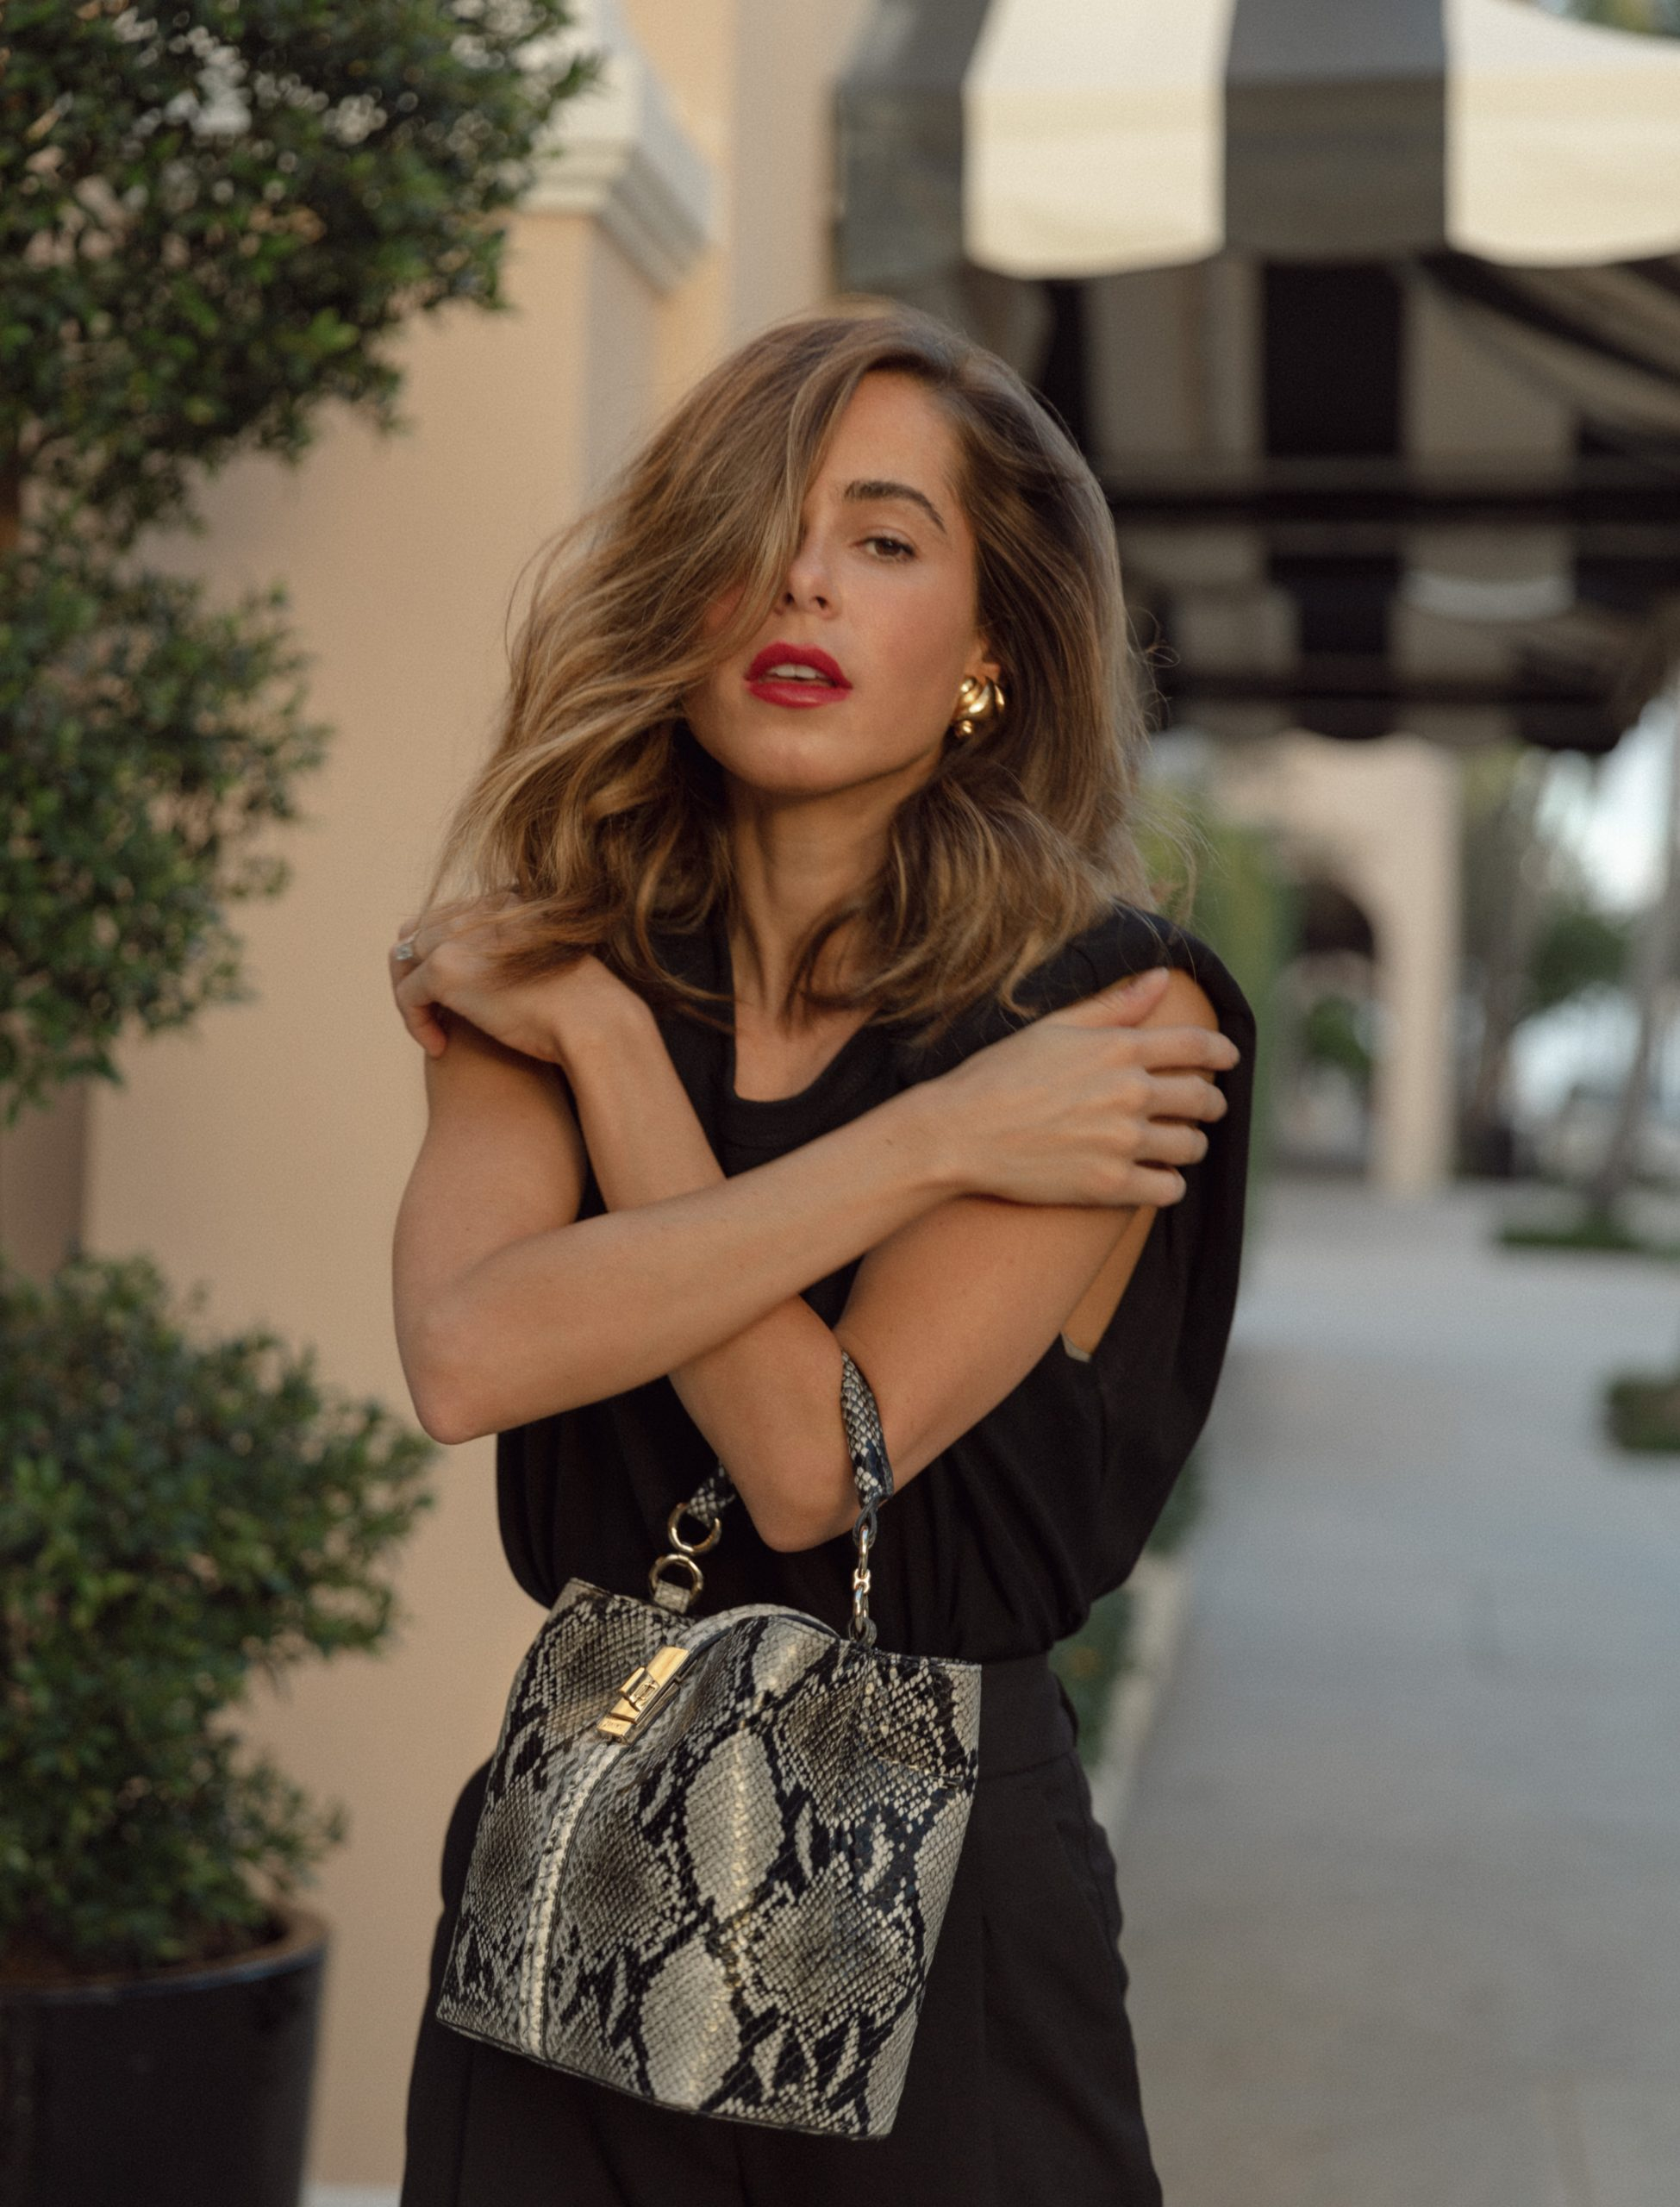 Style Blogger Stephanie Hill shares A Different Kind of Holiday on The Style Bungalow